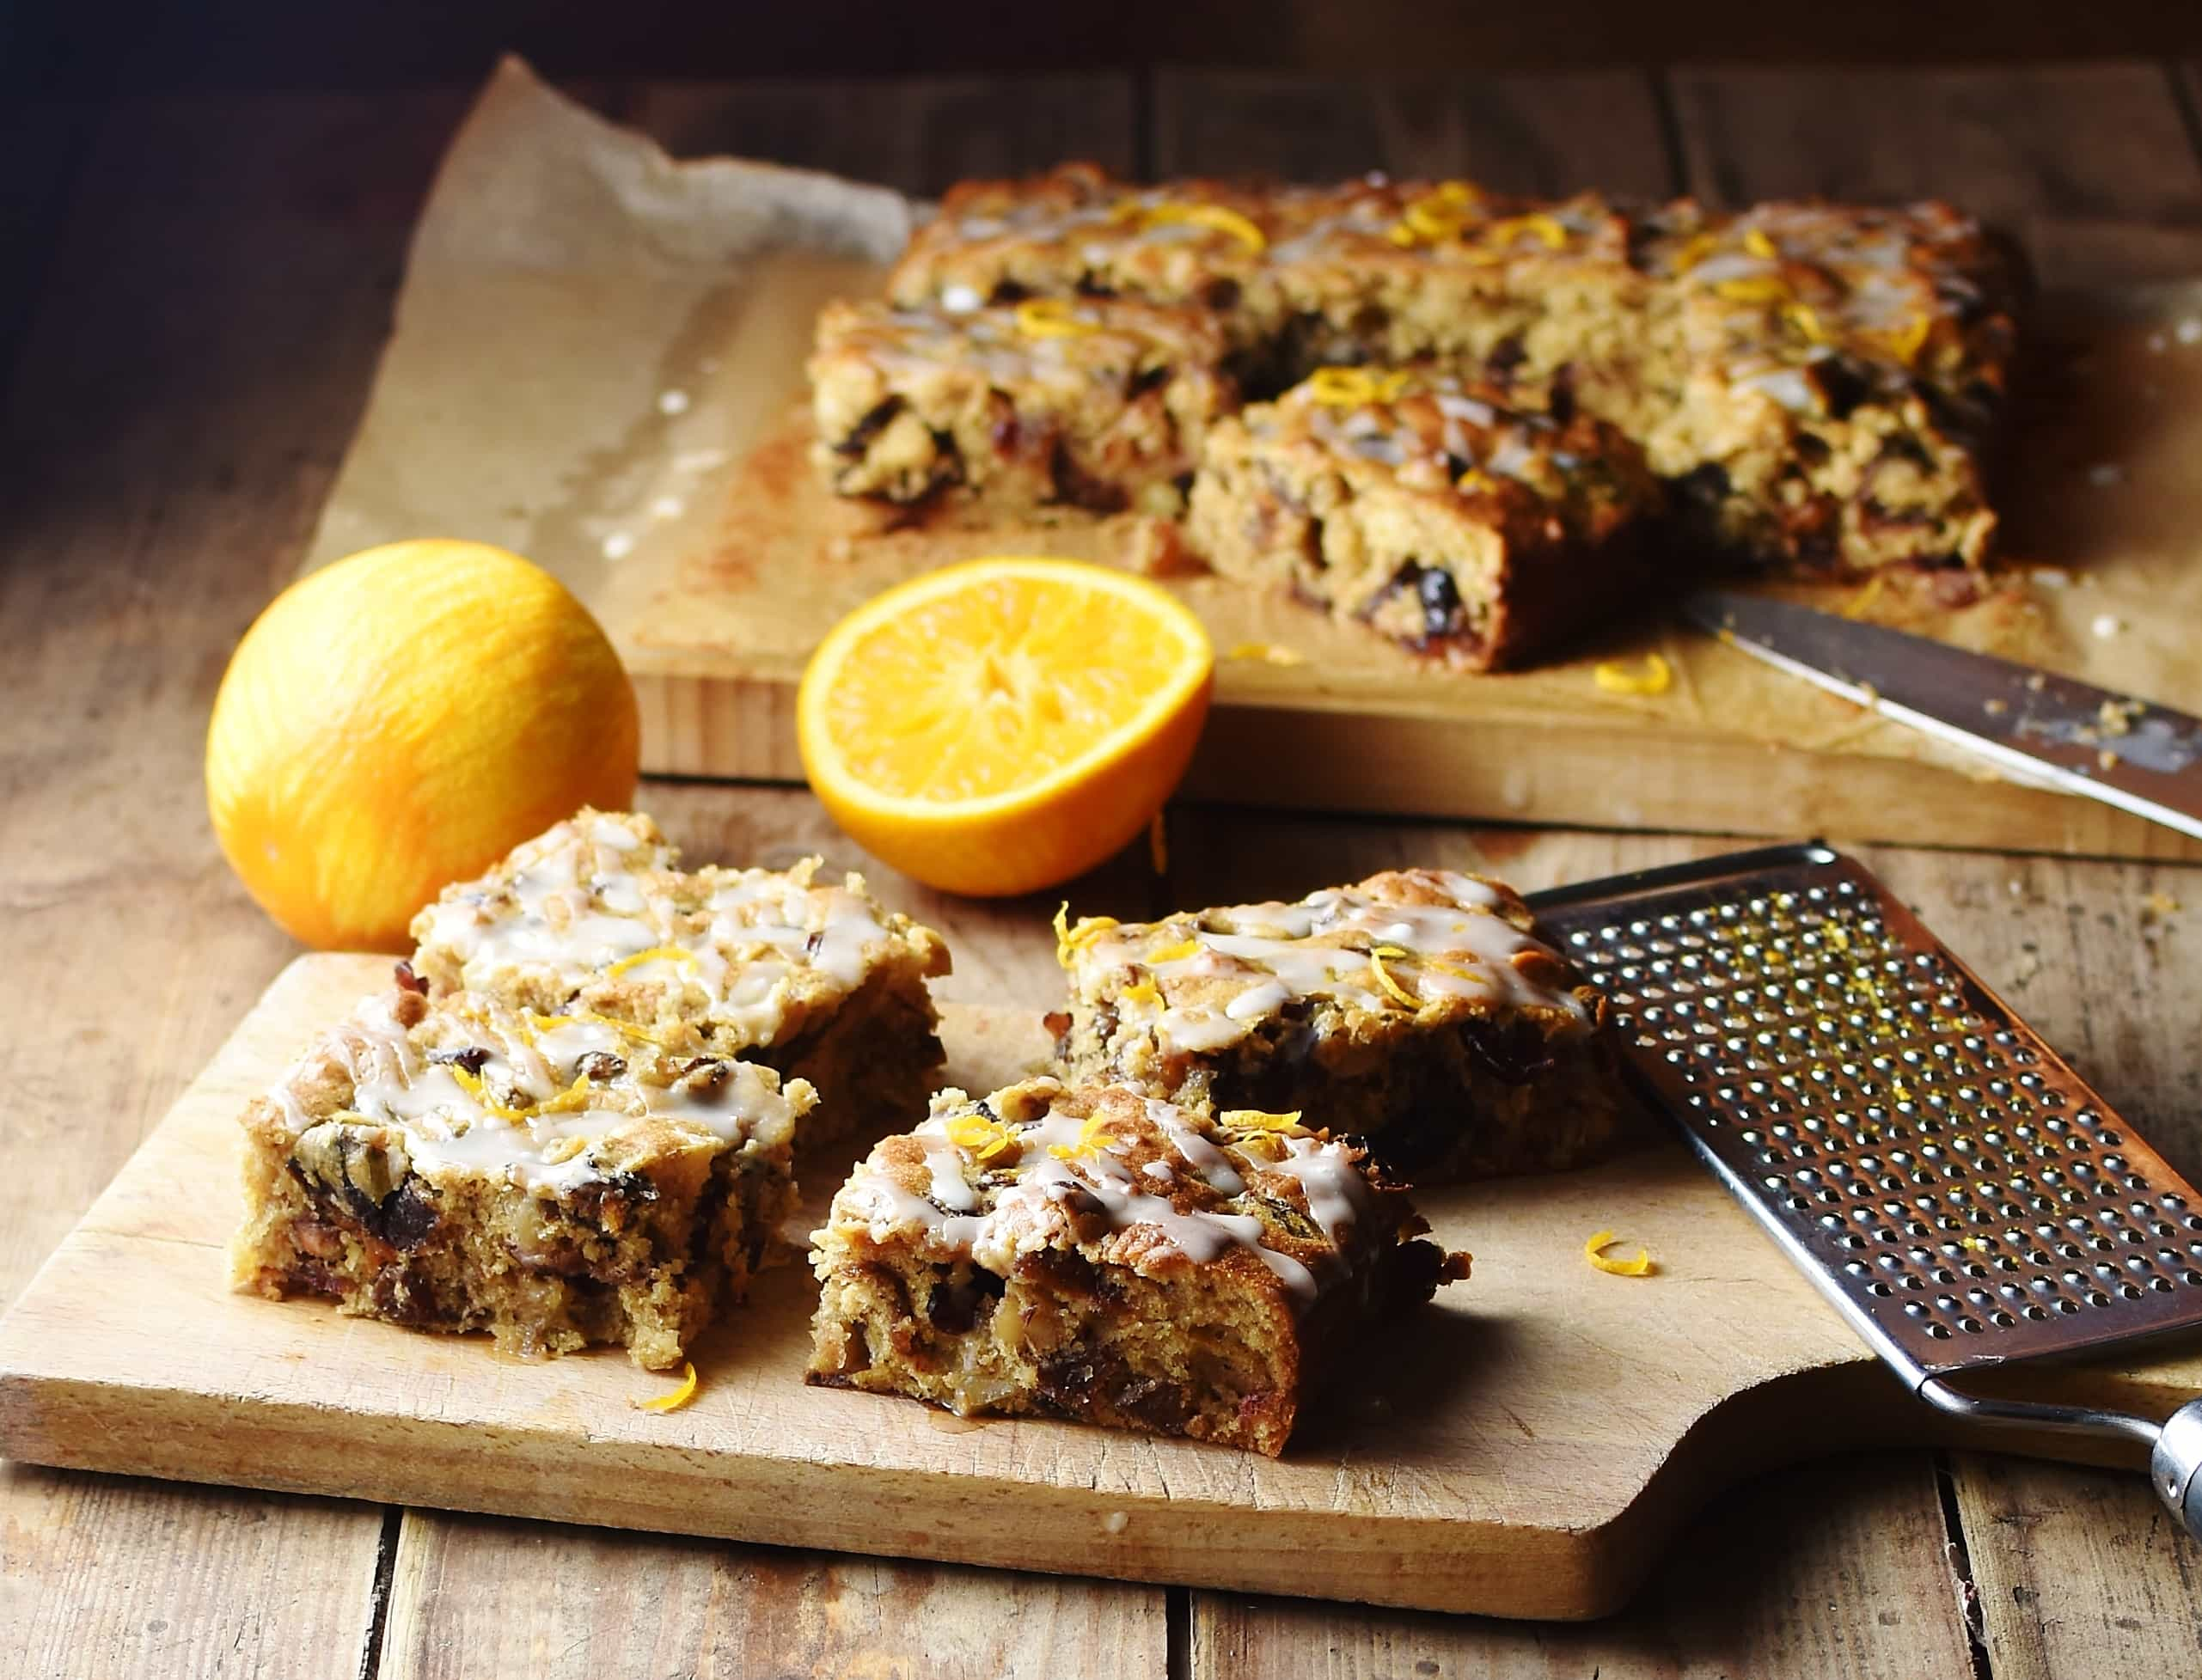 Slices of fruit cake on top of wooden board with zester to the right and oranges and more fruit cake in background.